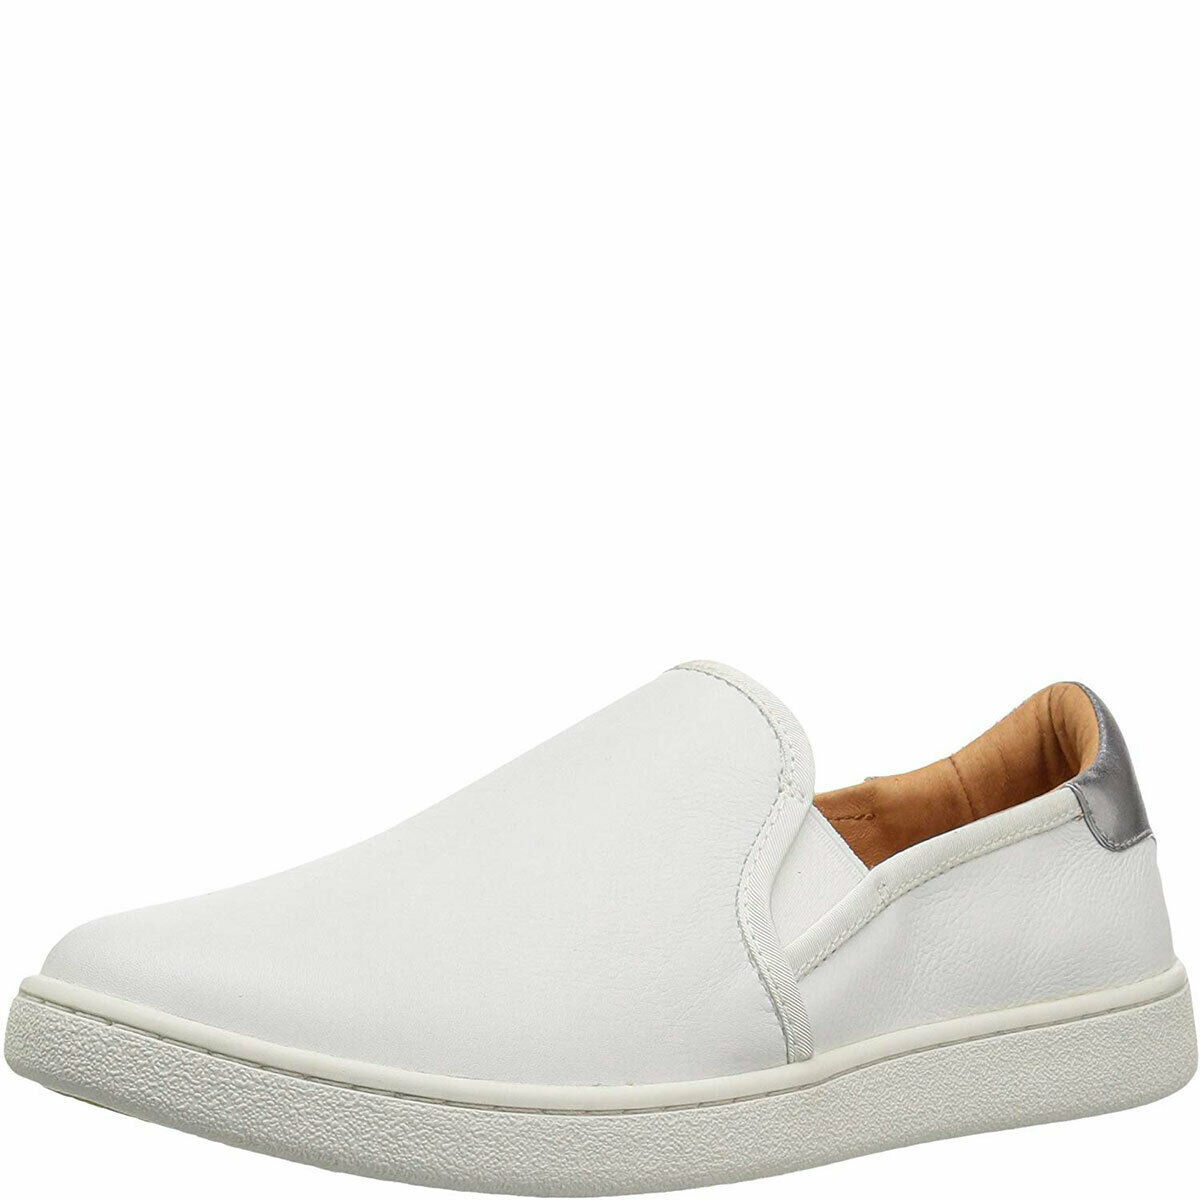 UGG Women's Cas Slip-on Fashion Sneakers White 5.5 M MSRP 100 New